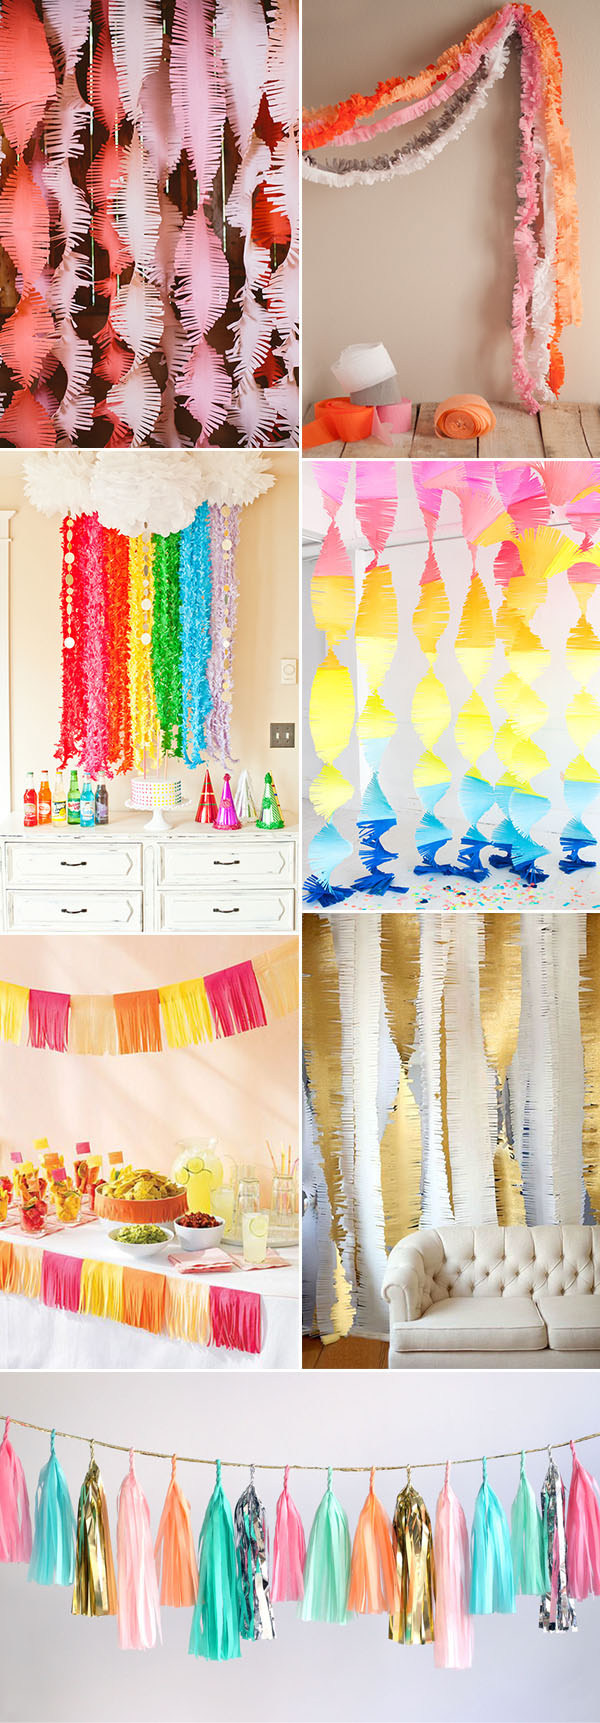 28 creative budget friendly diy wedding decoration ideas colorful paper fringe garland diy wedding decoration ideas junglespirit Choice Image